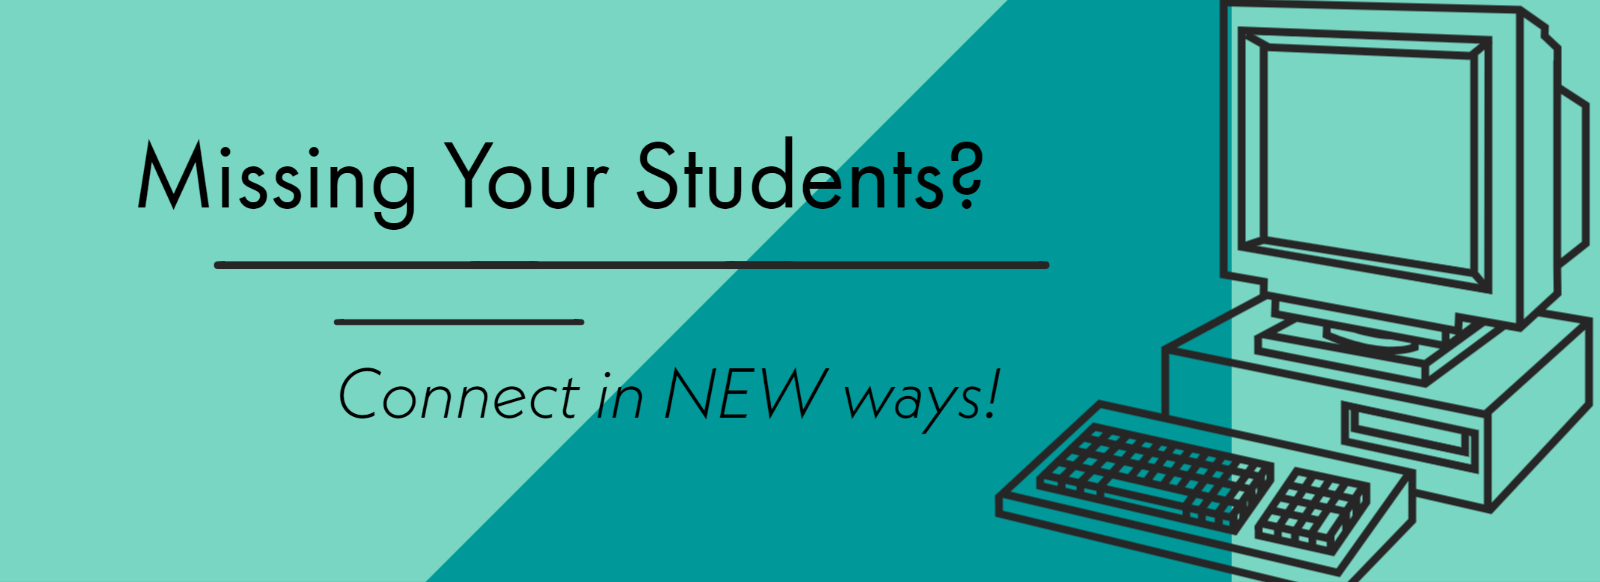 Missing Your Students? Connect in new ways!